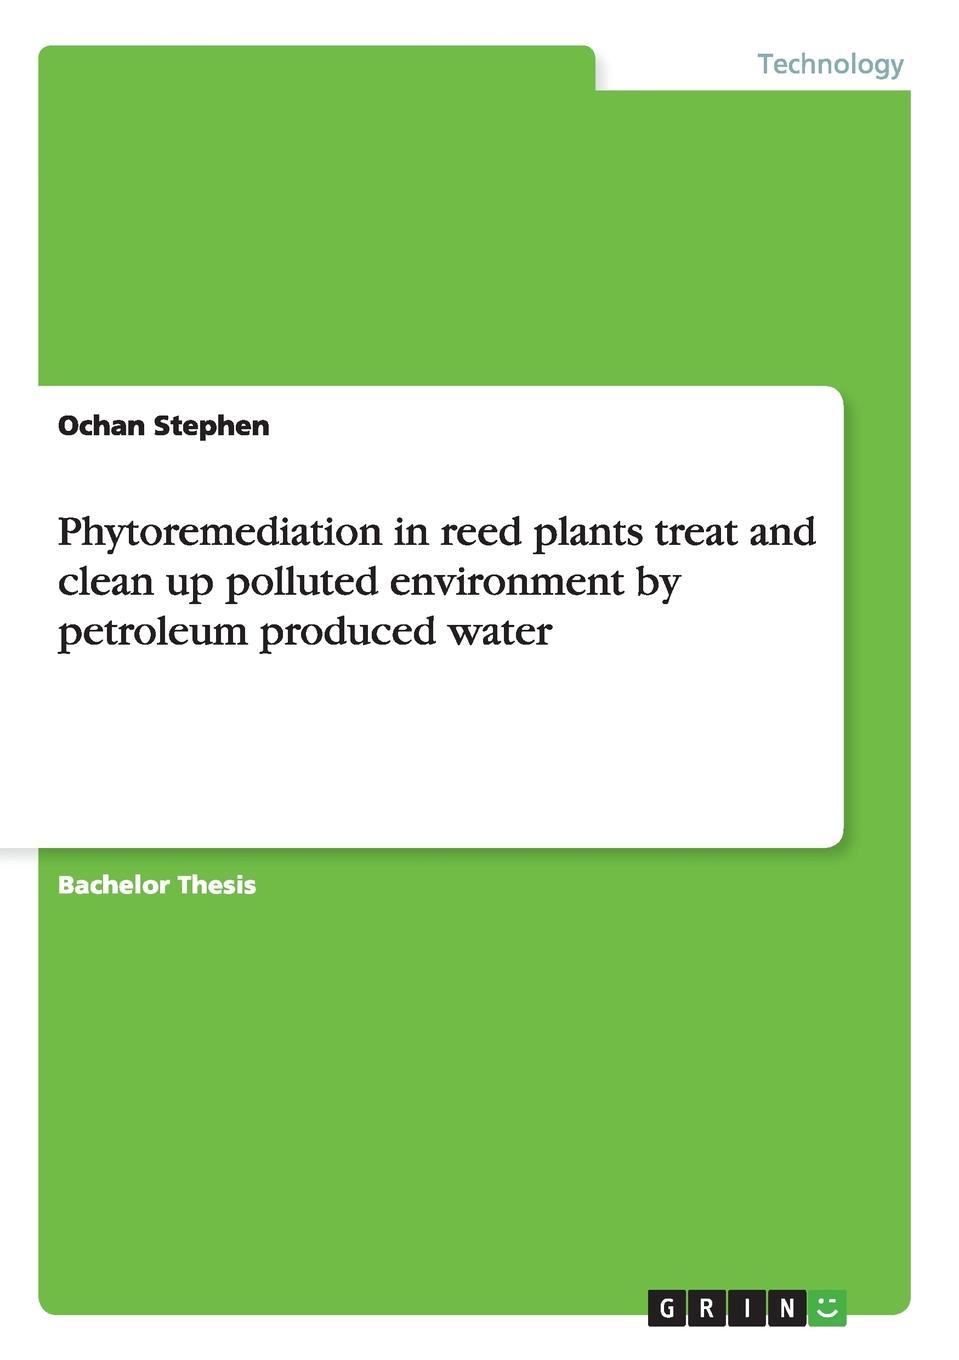 Ochan Stephen Phytoremediation in reed plants treat and clean up polluted environment by petroleum produced water gholamreza asadollahfardi rashin asadollahfardi the usage of the polluted water for agriculture